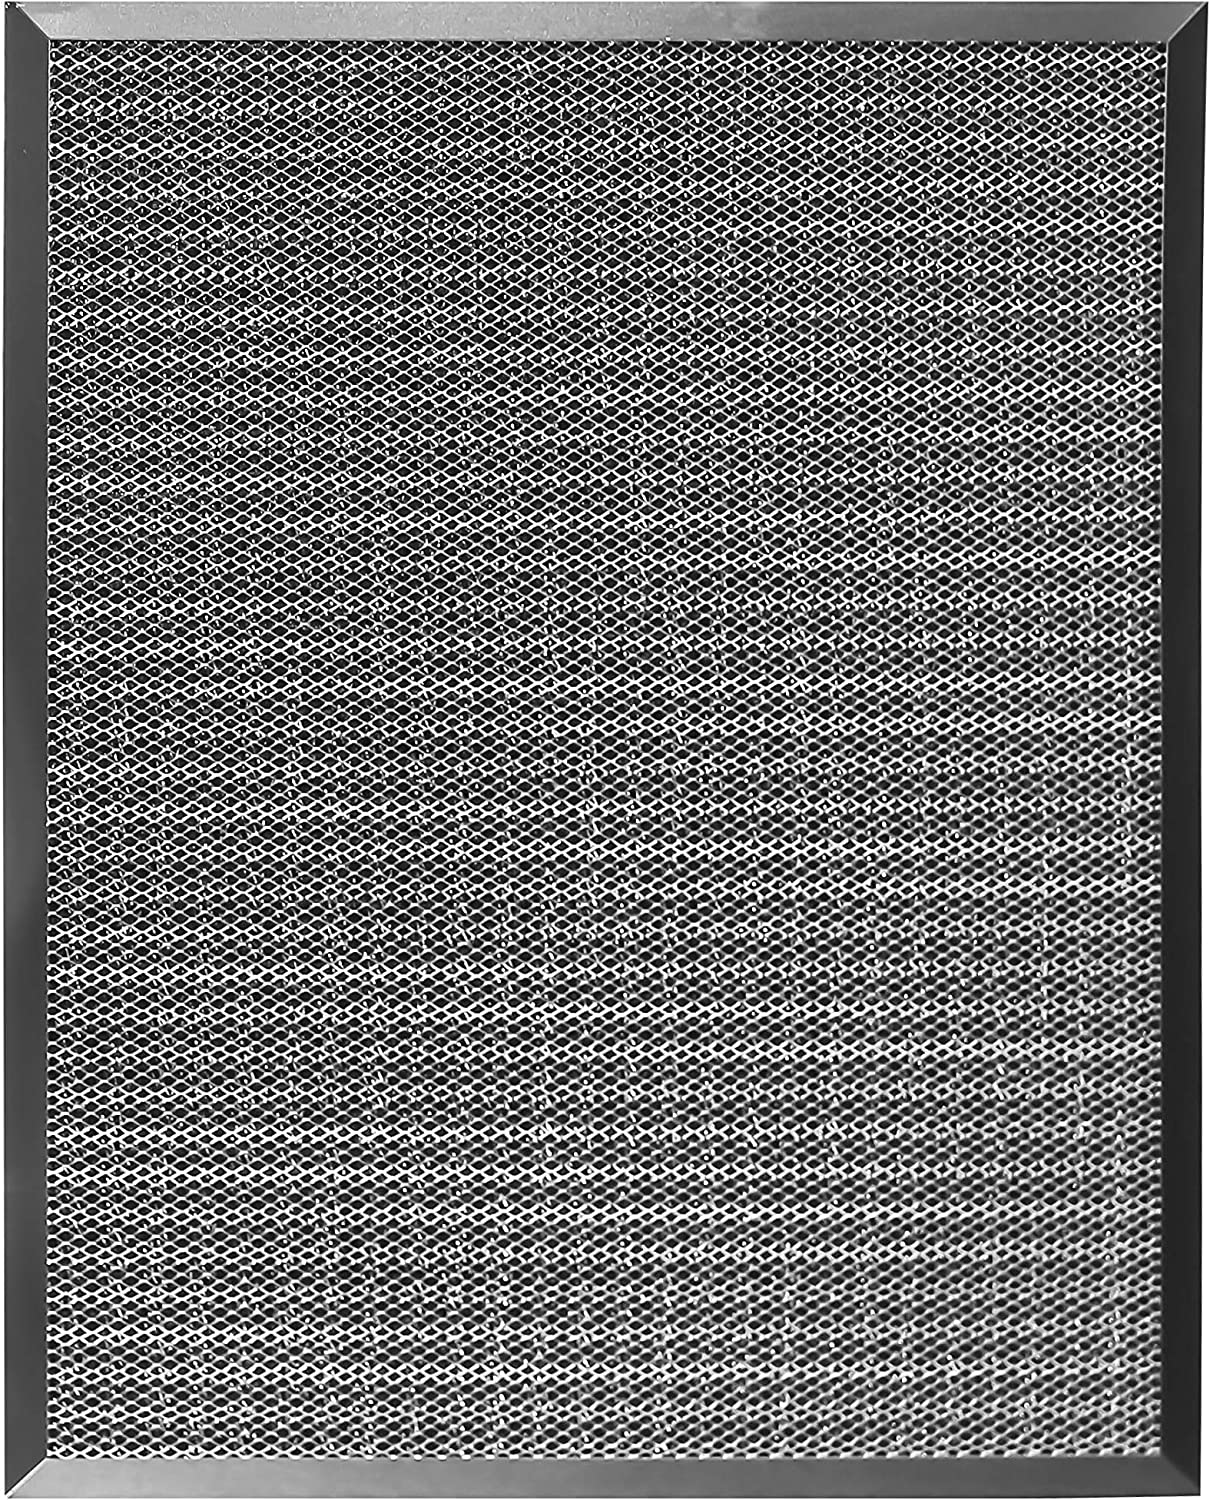 (20x24x1) Aluminum Electrostatic Air Filter Replacement Washable Air Purifier A/C Filter for Central HVAC – Improve airflow & Furnace longevity by LifeSupplyUSA